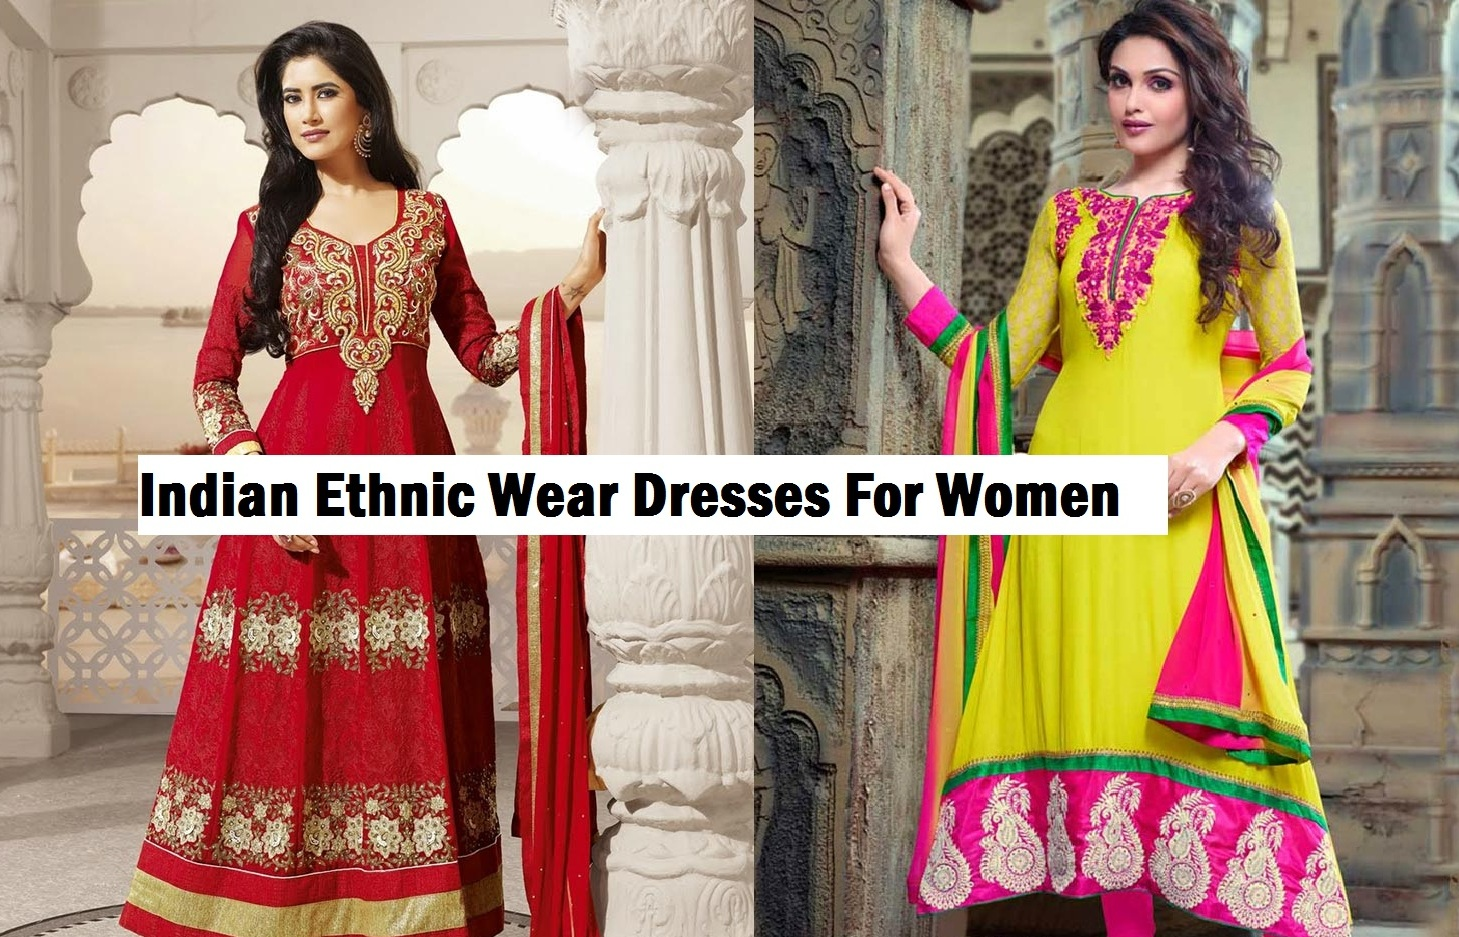 Indian women dress change colors